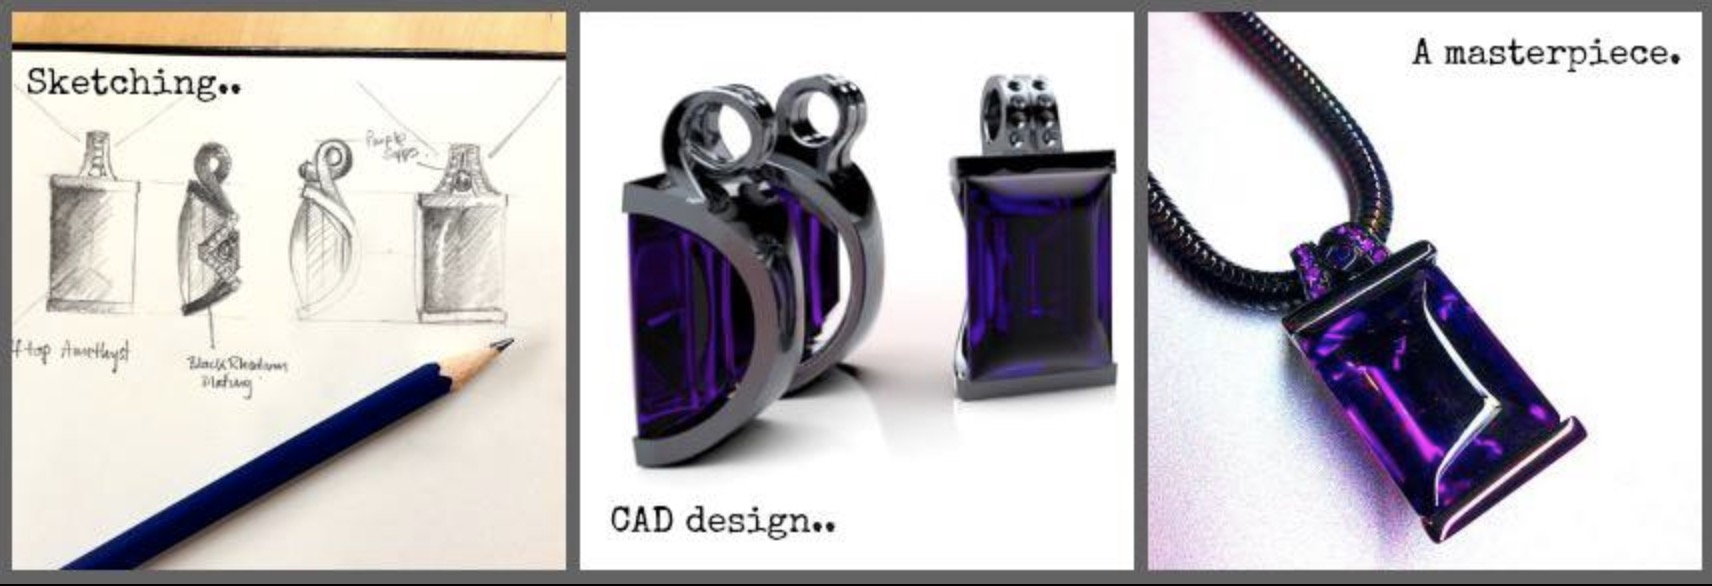 An amazing buff top rectangular amethyst set pendant with ruthenium plated silver mount and chain.